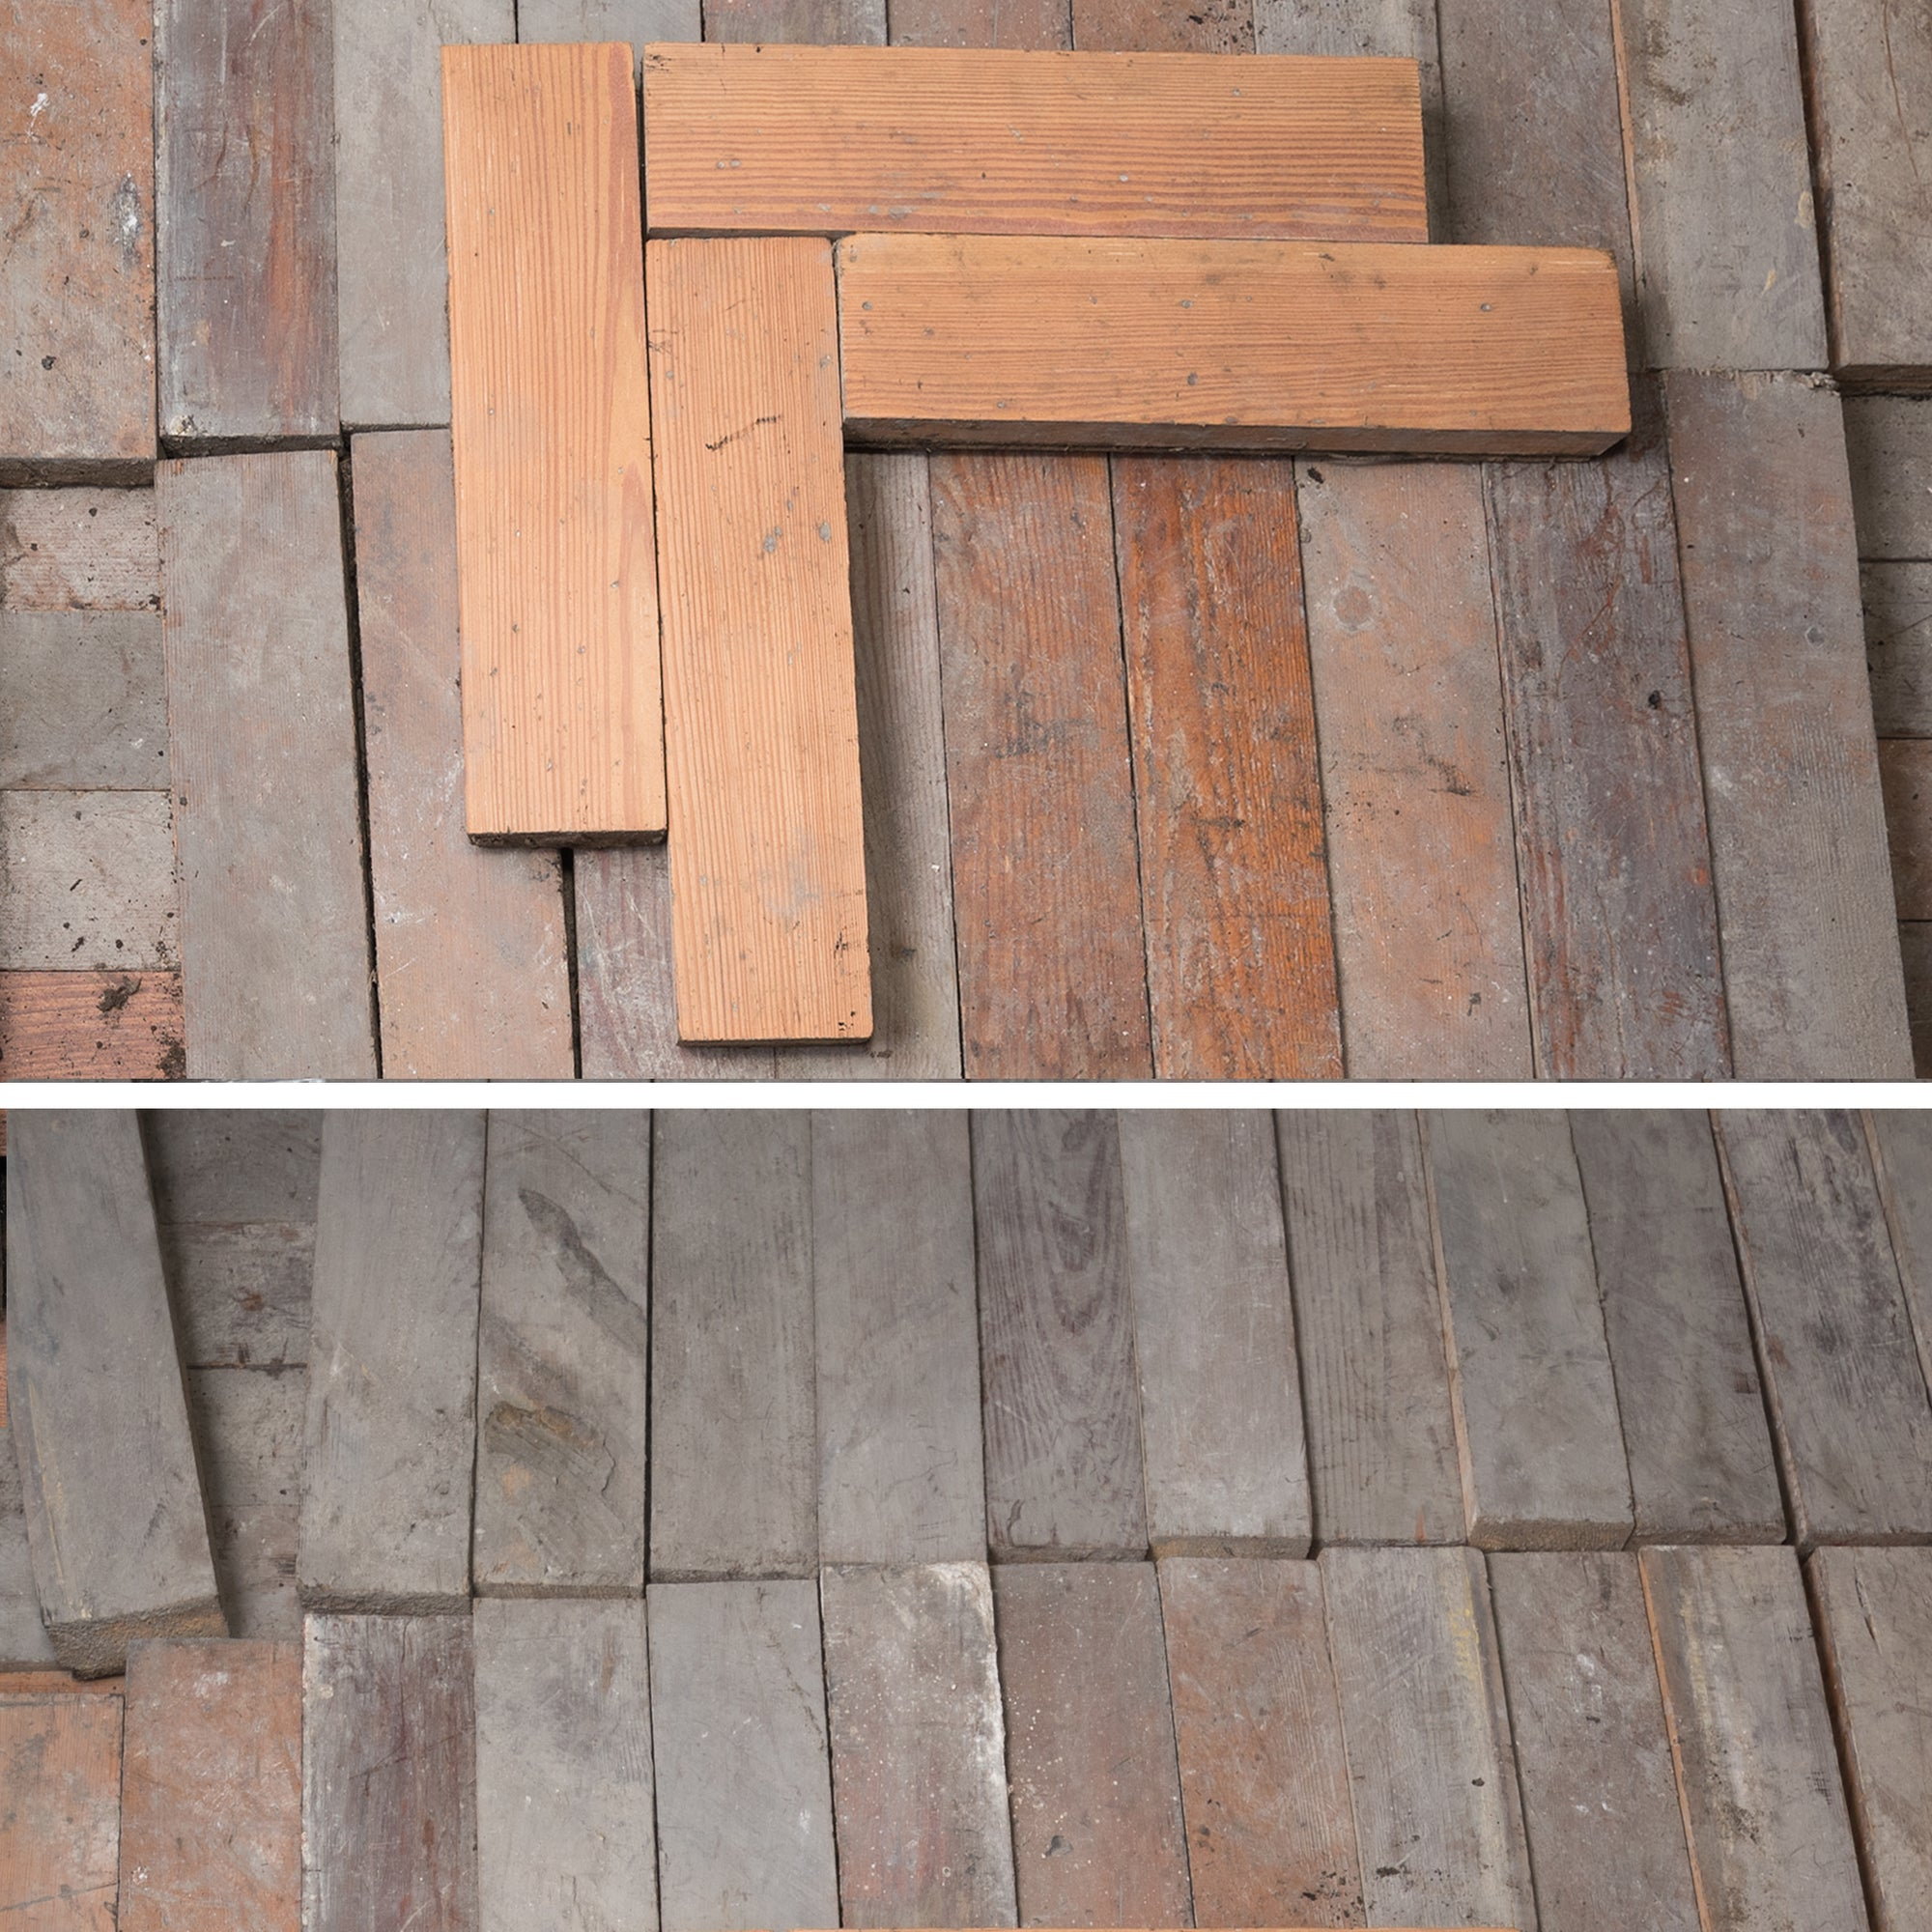 18 sqm of Antique Reclaimed Pine Parquet Flooring